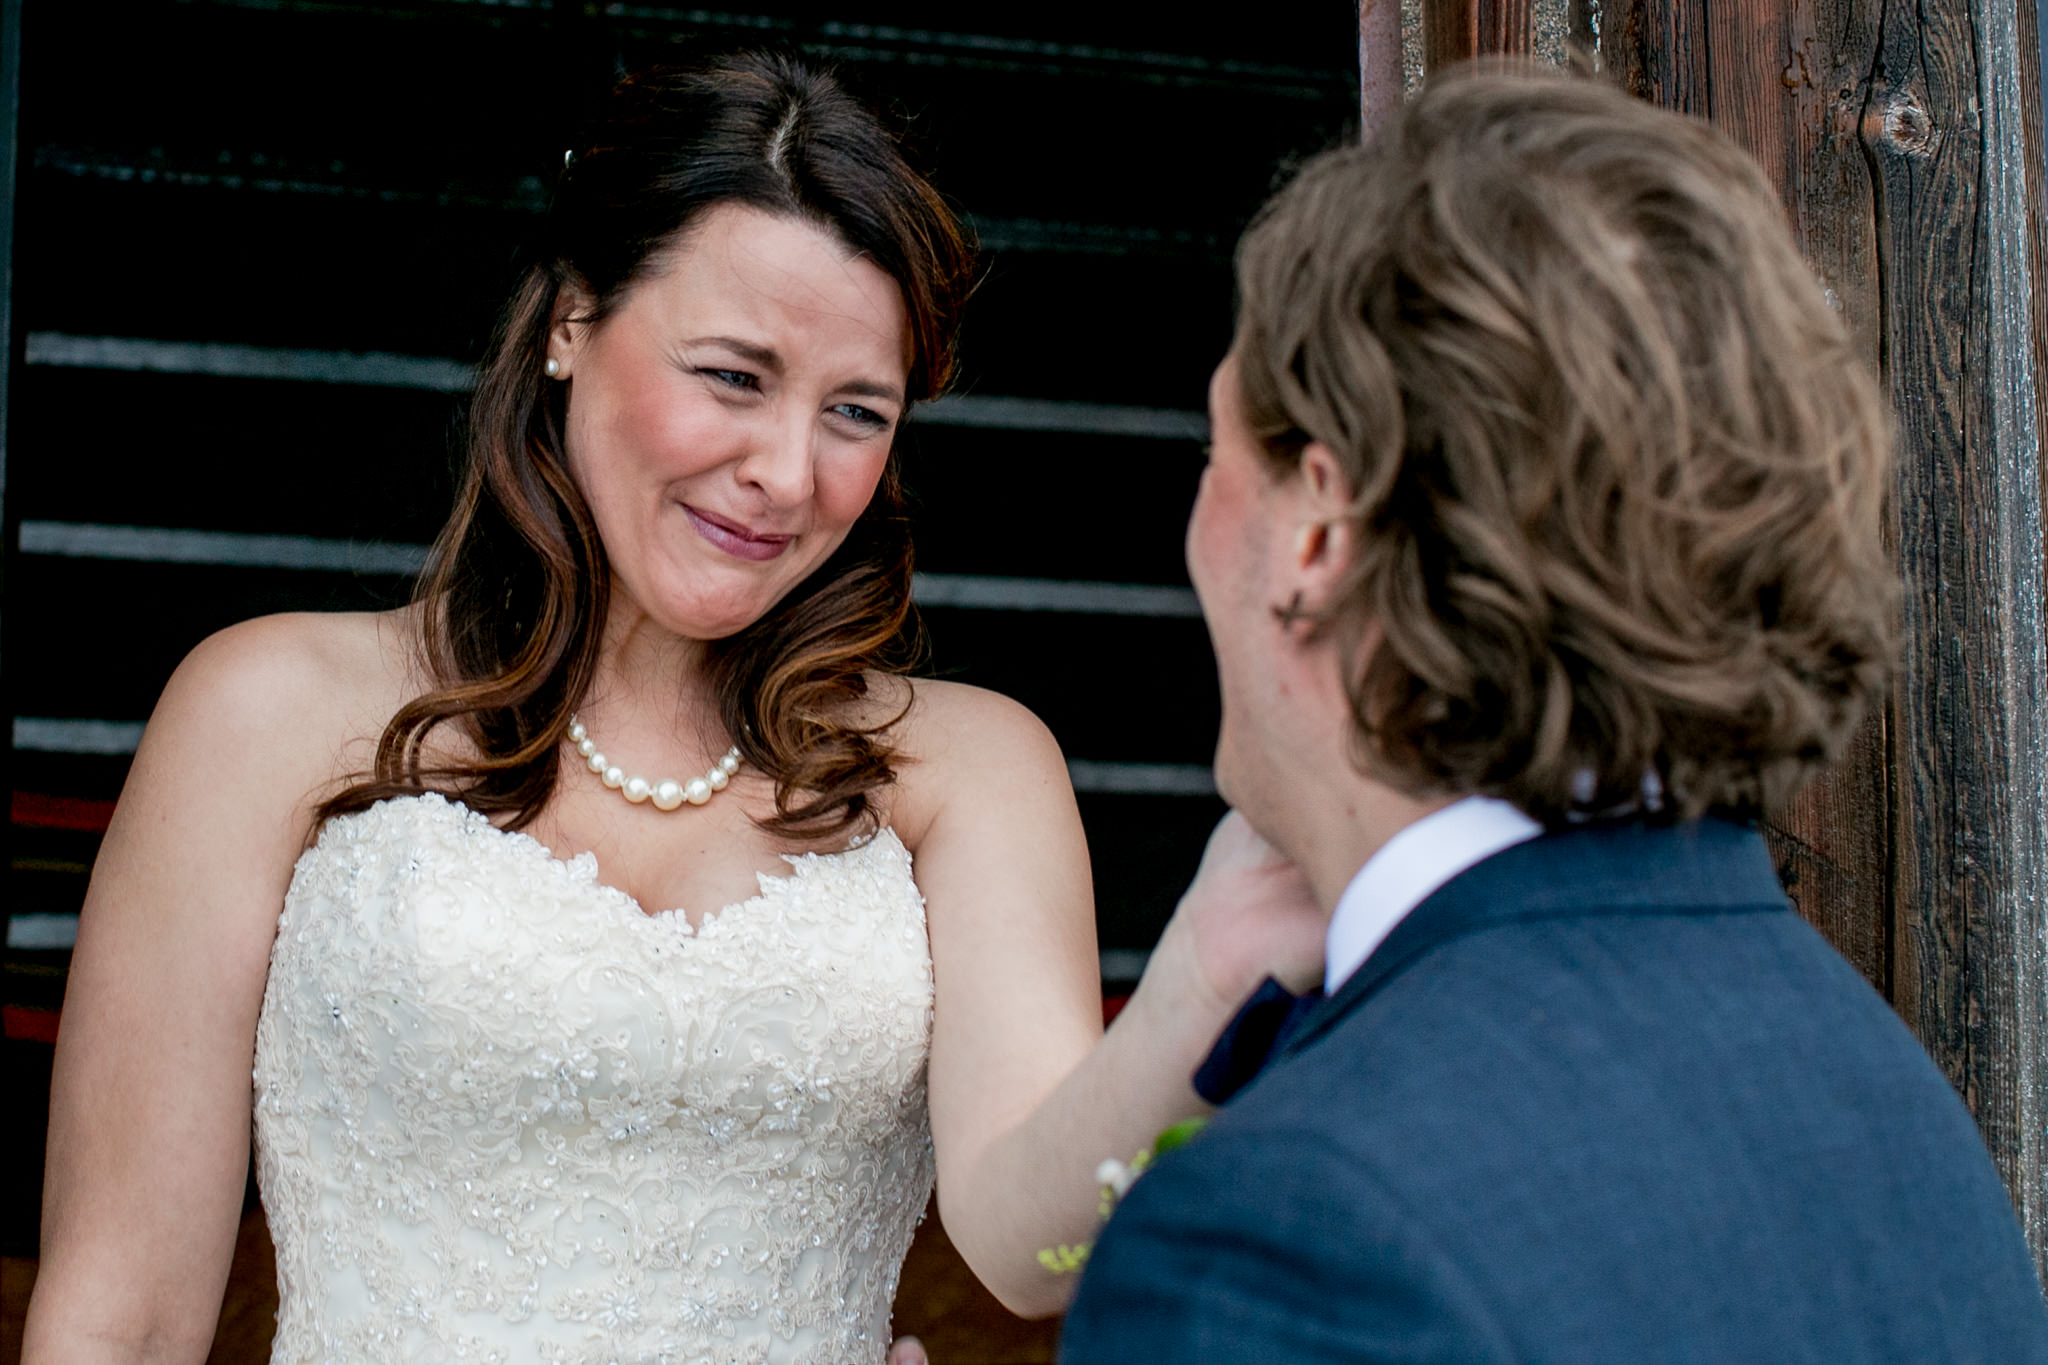 Bride seeing groom first time with emotional laughter and tears at Silcox Hut near Timberline Lodge